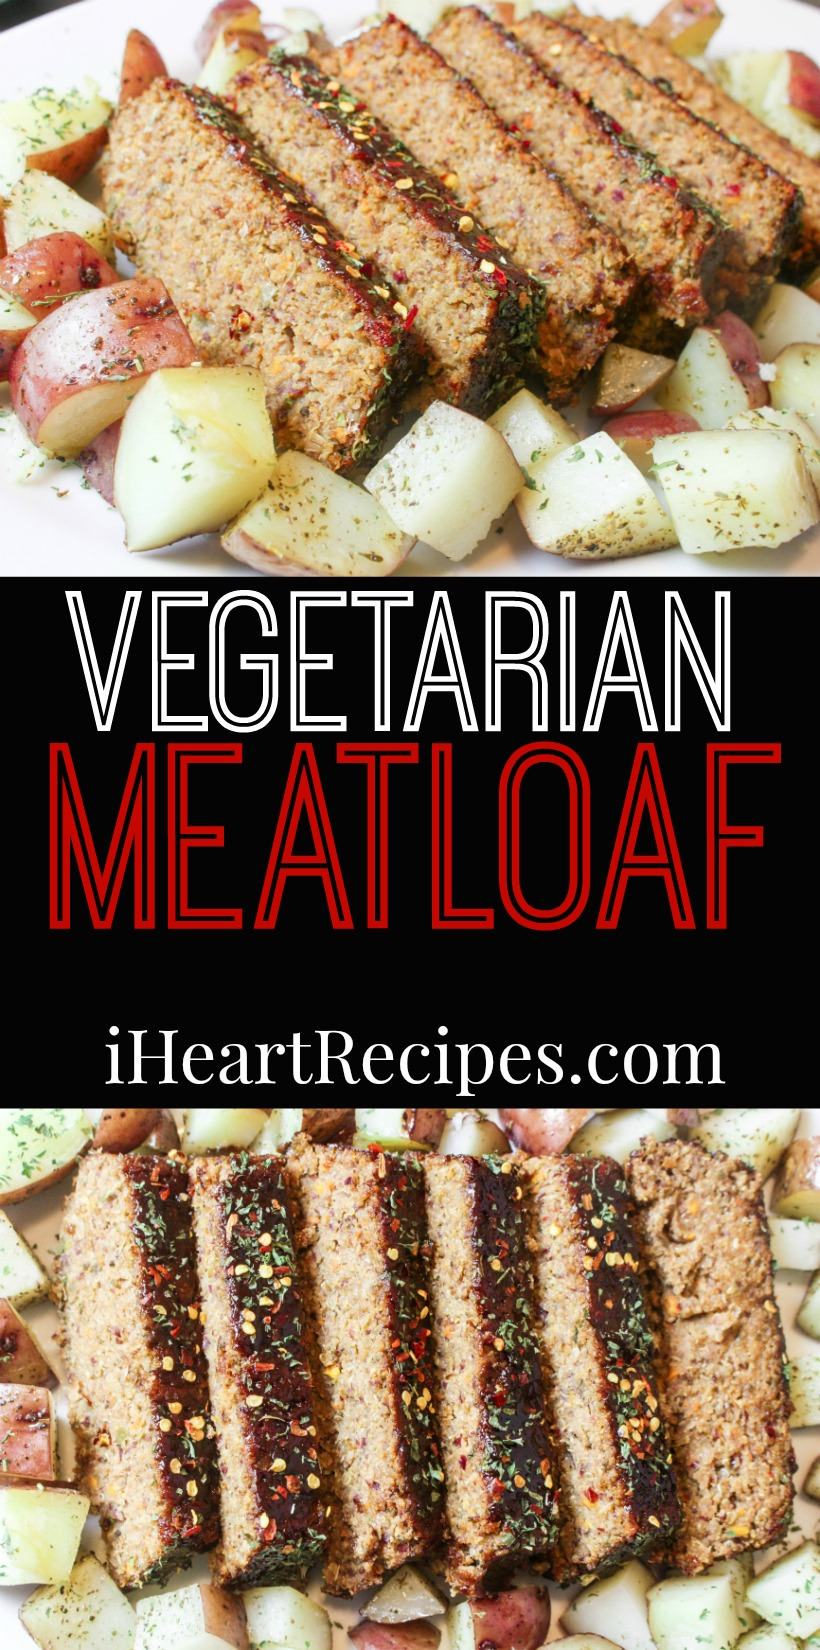 Vegetarian Meatloaf | I Heart Recipes